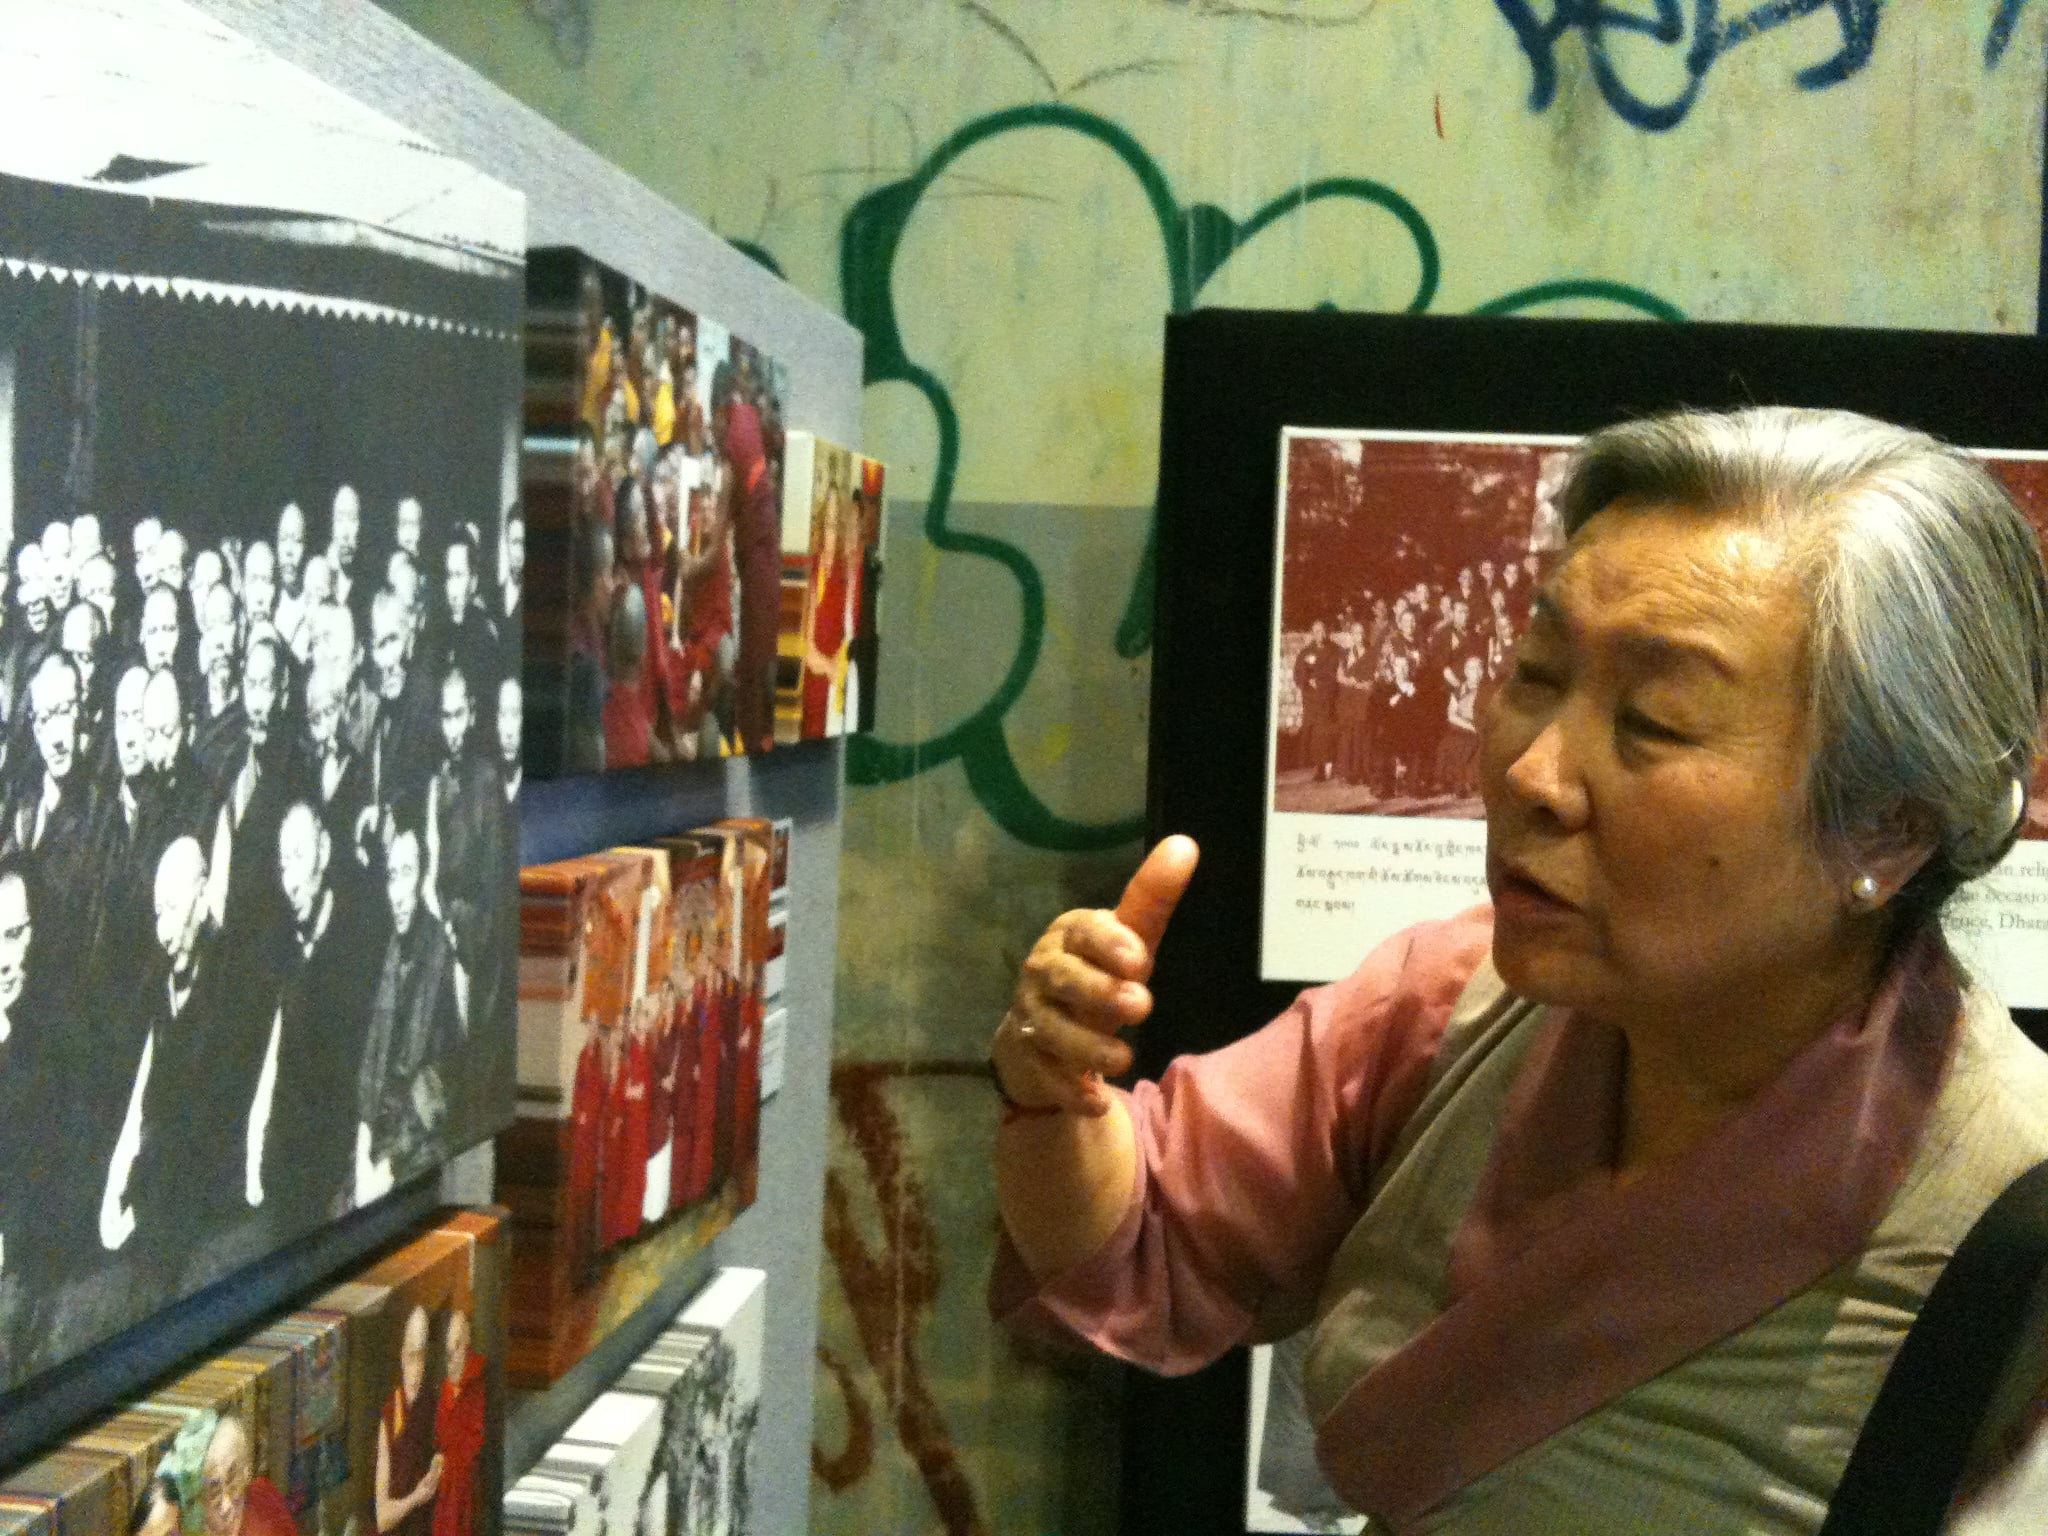 Jetsun Pema, The Dalai Lama's sister viewing The Dalai Lama's Journey Exhibition   Festival of Tibet, Brisbane, QLD, 2011